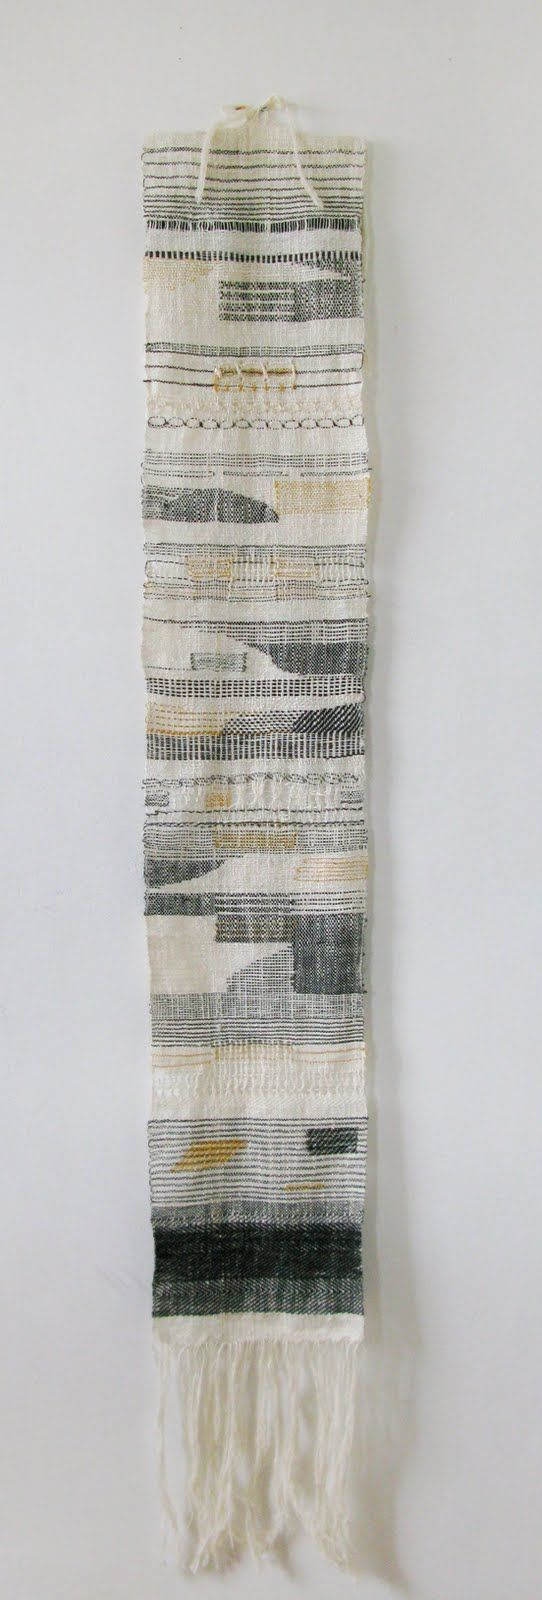 Hannah Waldron weaving sampler - learning to weave